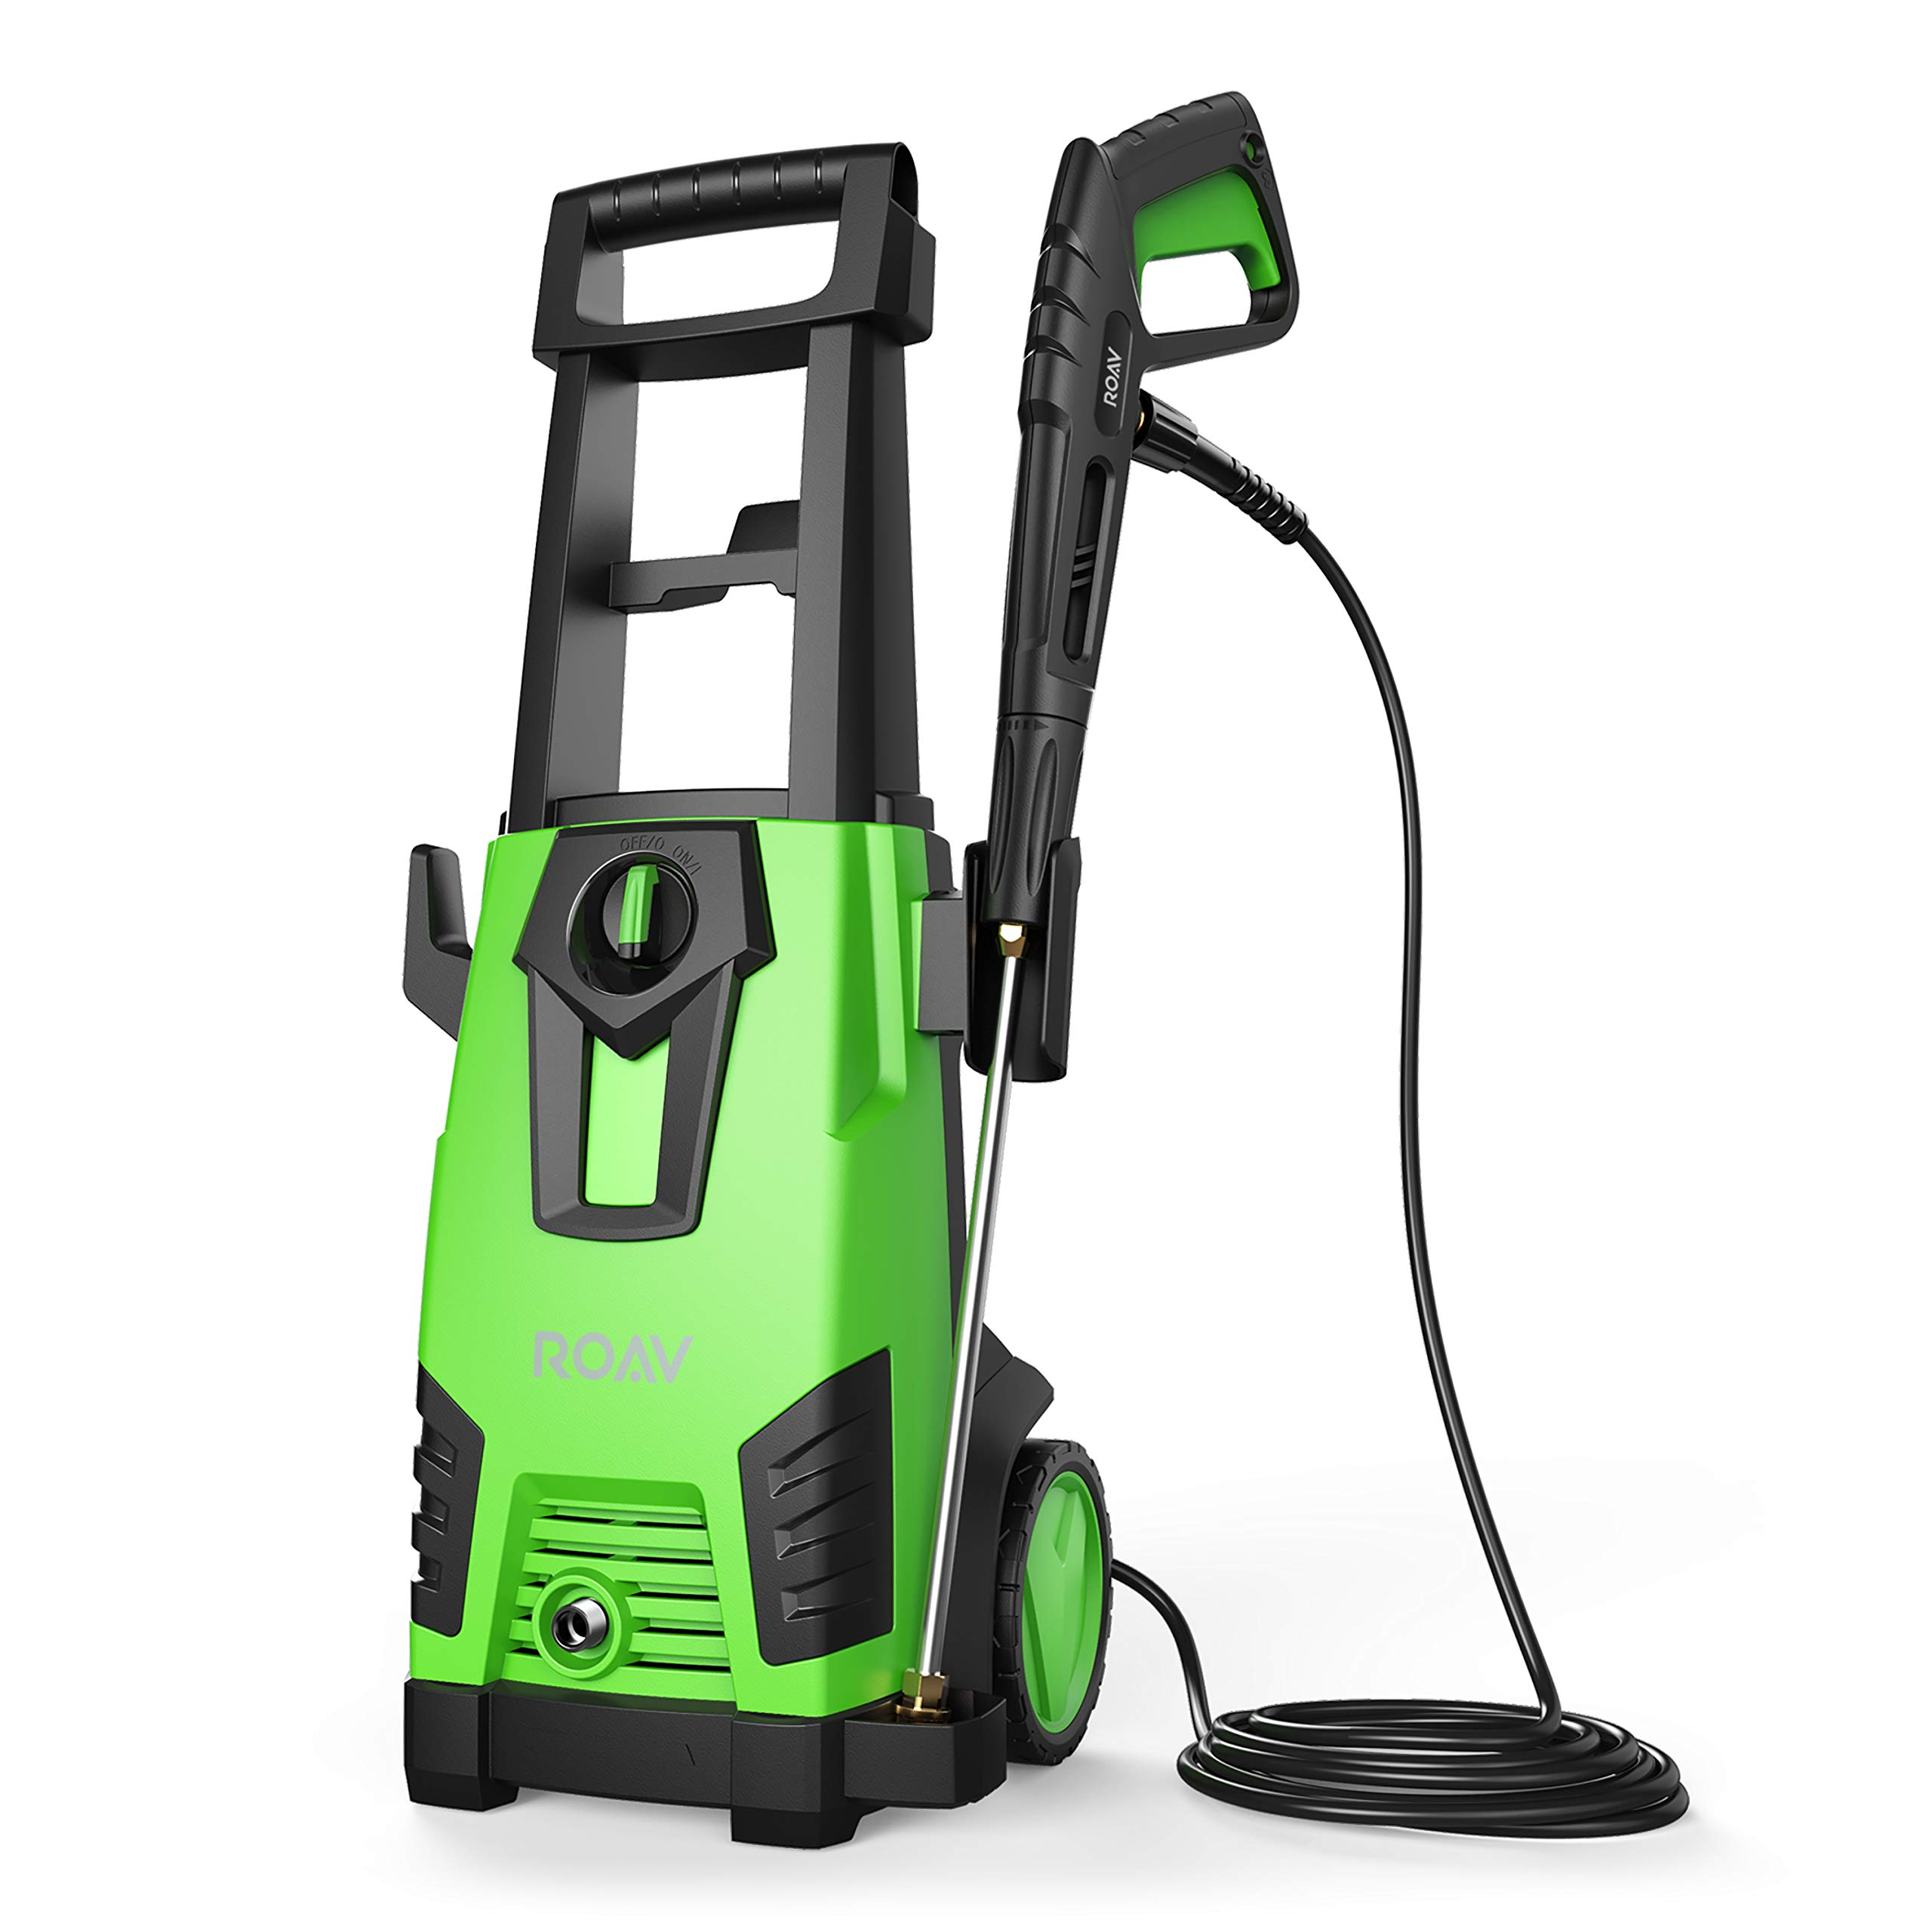 ROAV HydroClean, by Anker, Electric Pressure Washer, Power Washer with 2100 PSI, 1.78 GPM, Longer Cables and Hoses, and Detergent Tank, for Cleaning Cars, Houses Driveways, Patios, and More